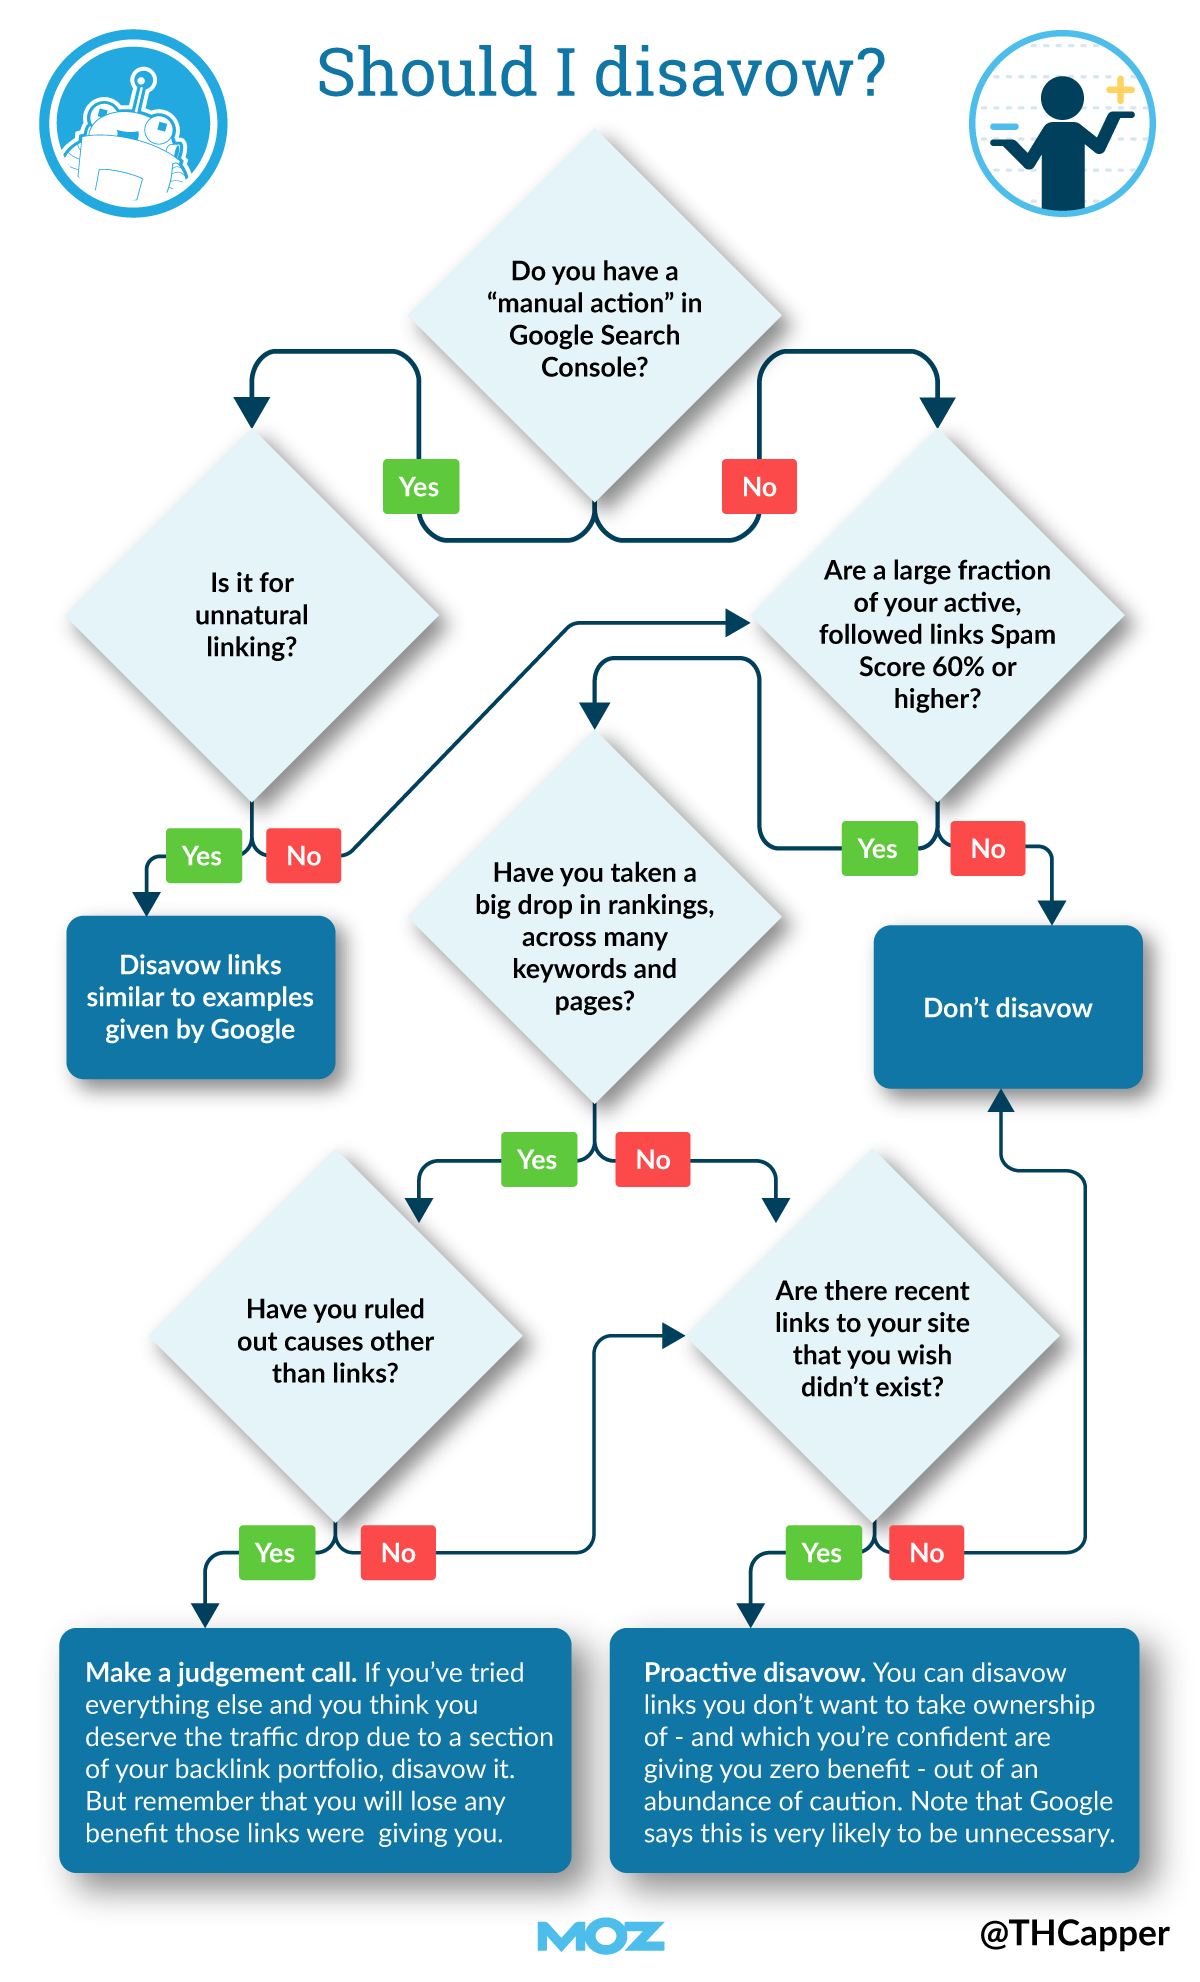 Flow chart to determine when you should disavow links.